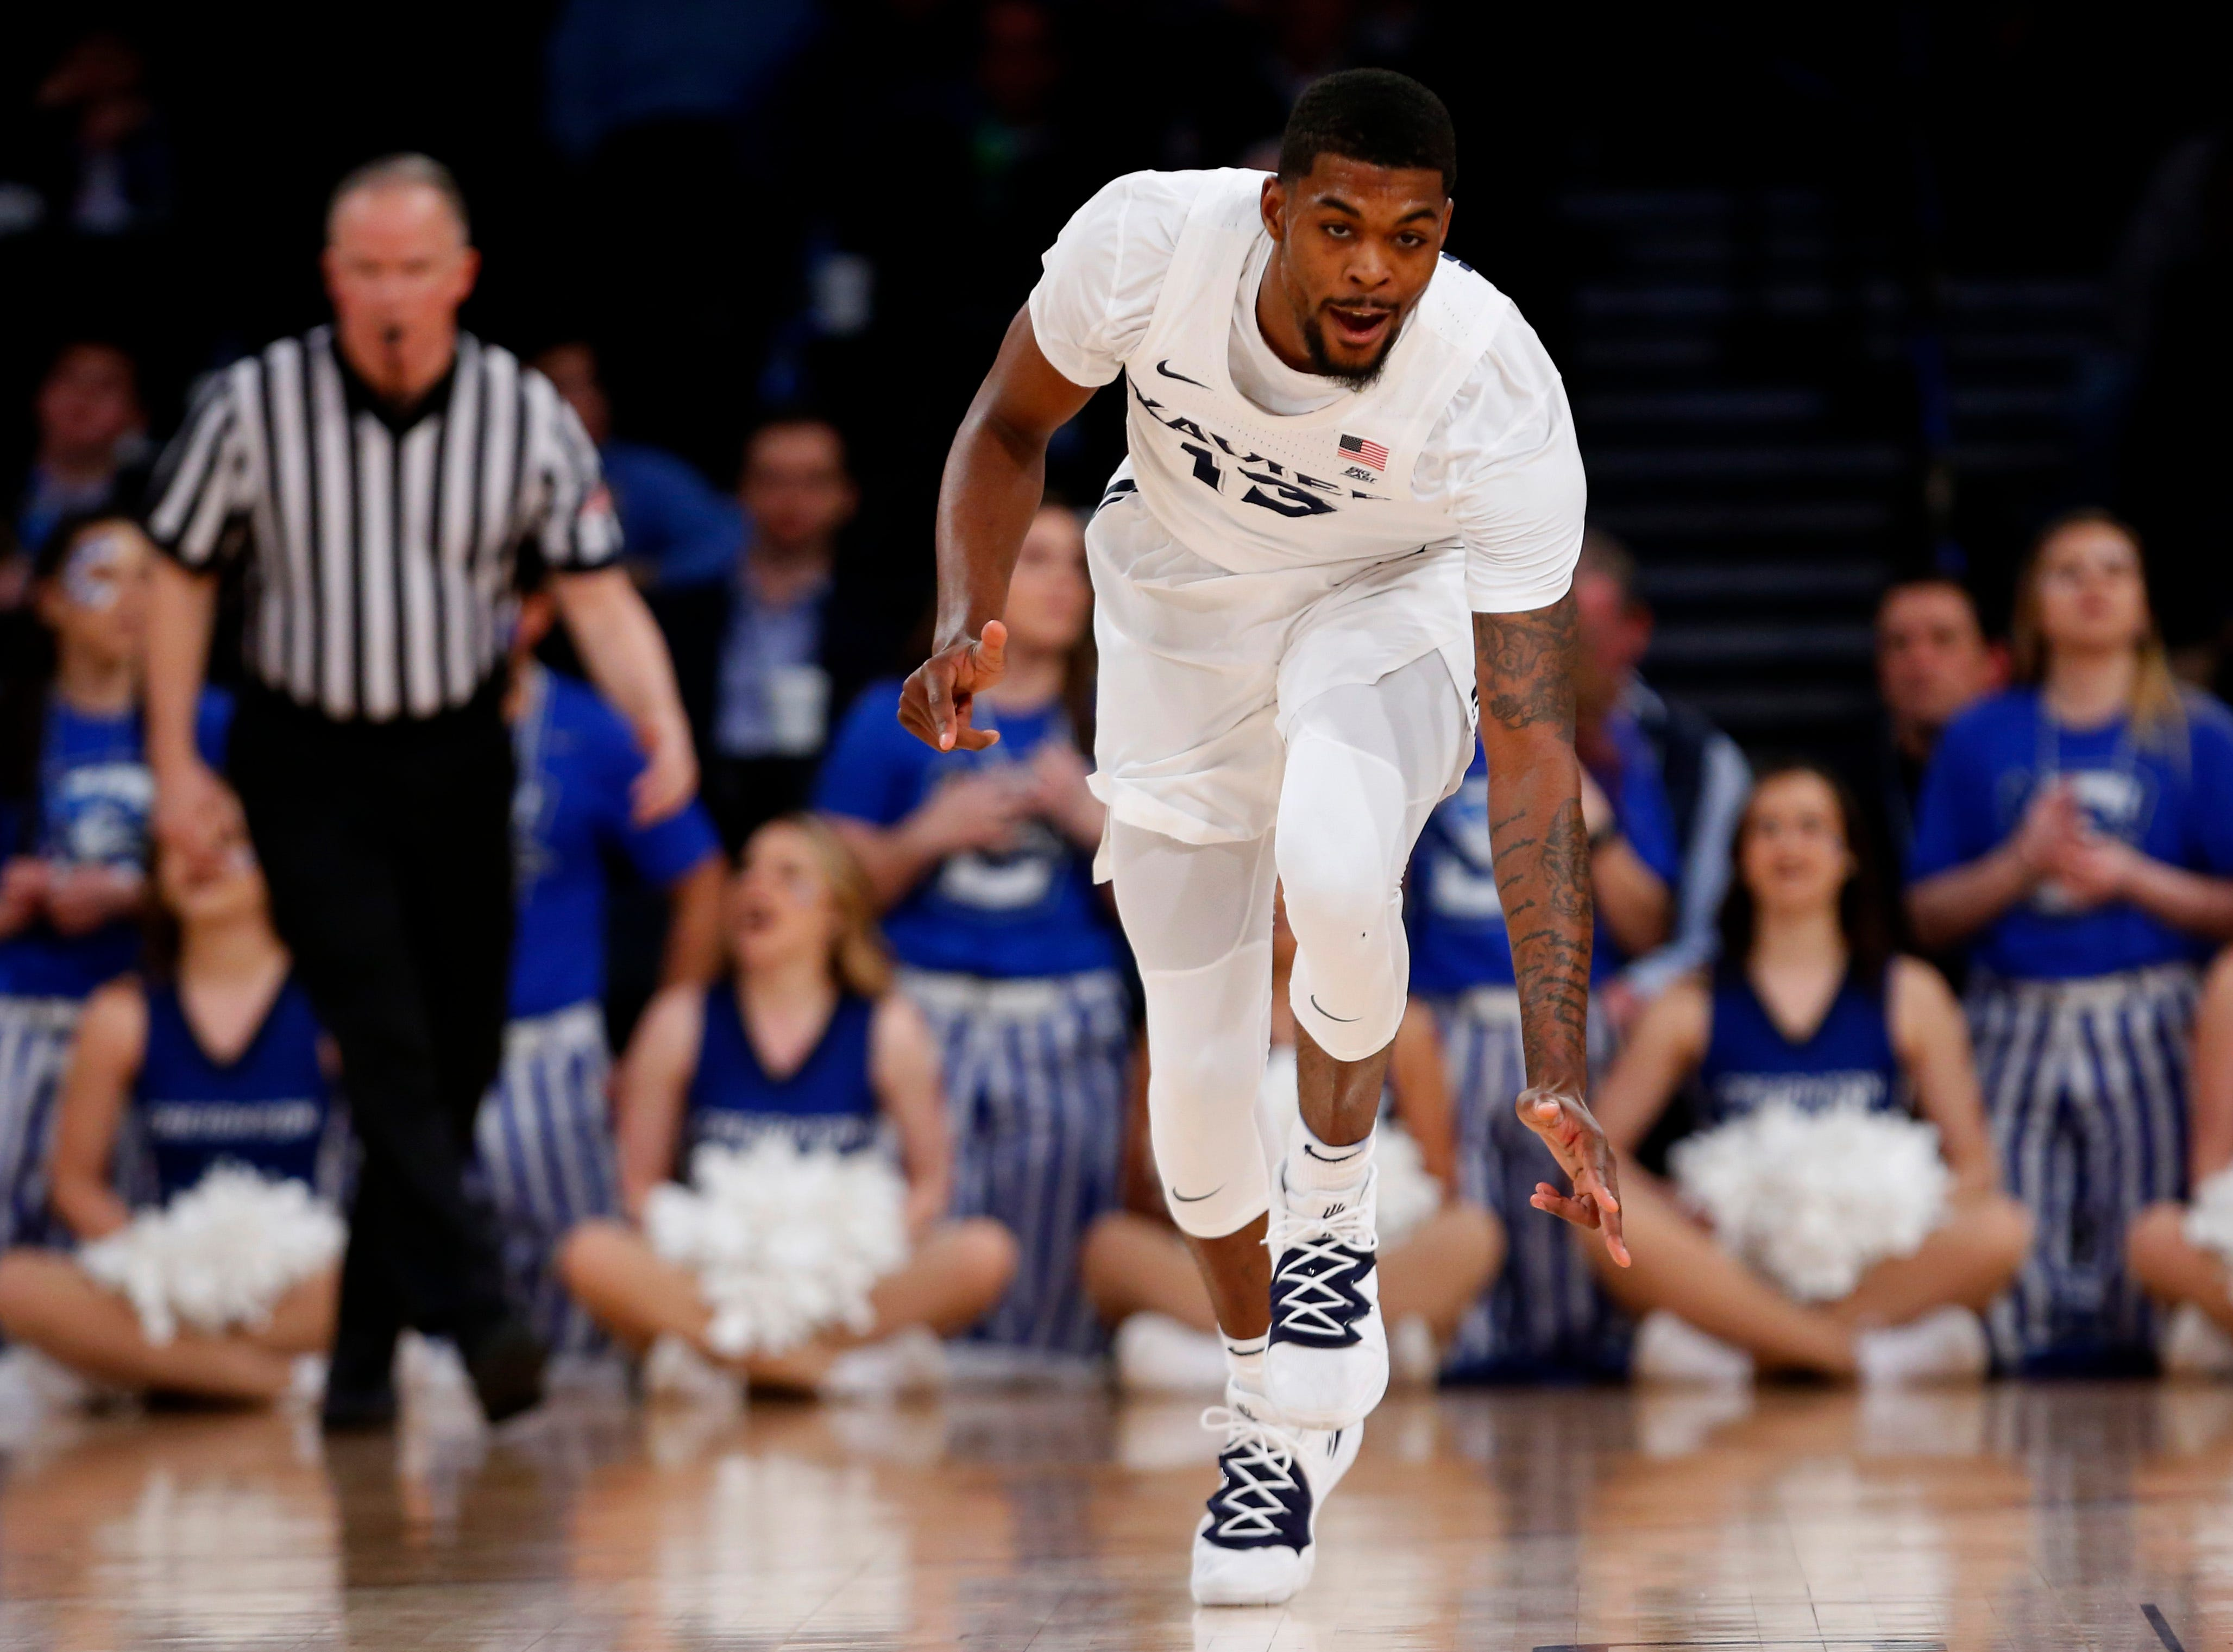 Xavier Musketeers forward Naji Marshall (13) reacts after making a three-point shot against the Creighton Bluejays during the first half of a quarterfinal game of the Big East conference tournament at Madison Square Garden.